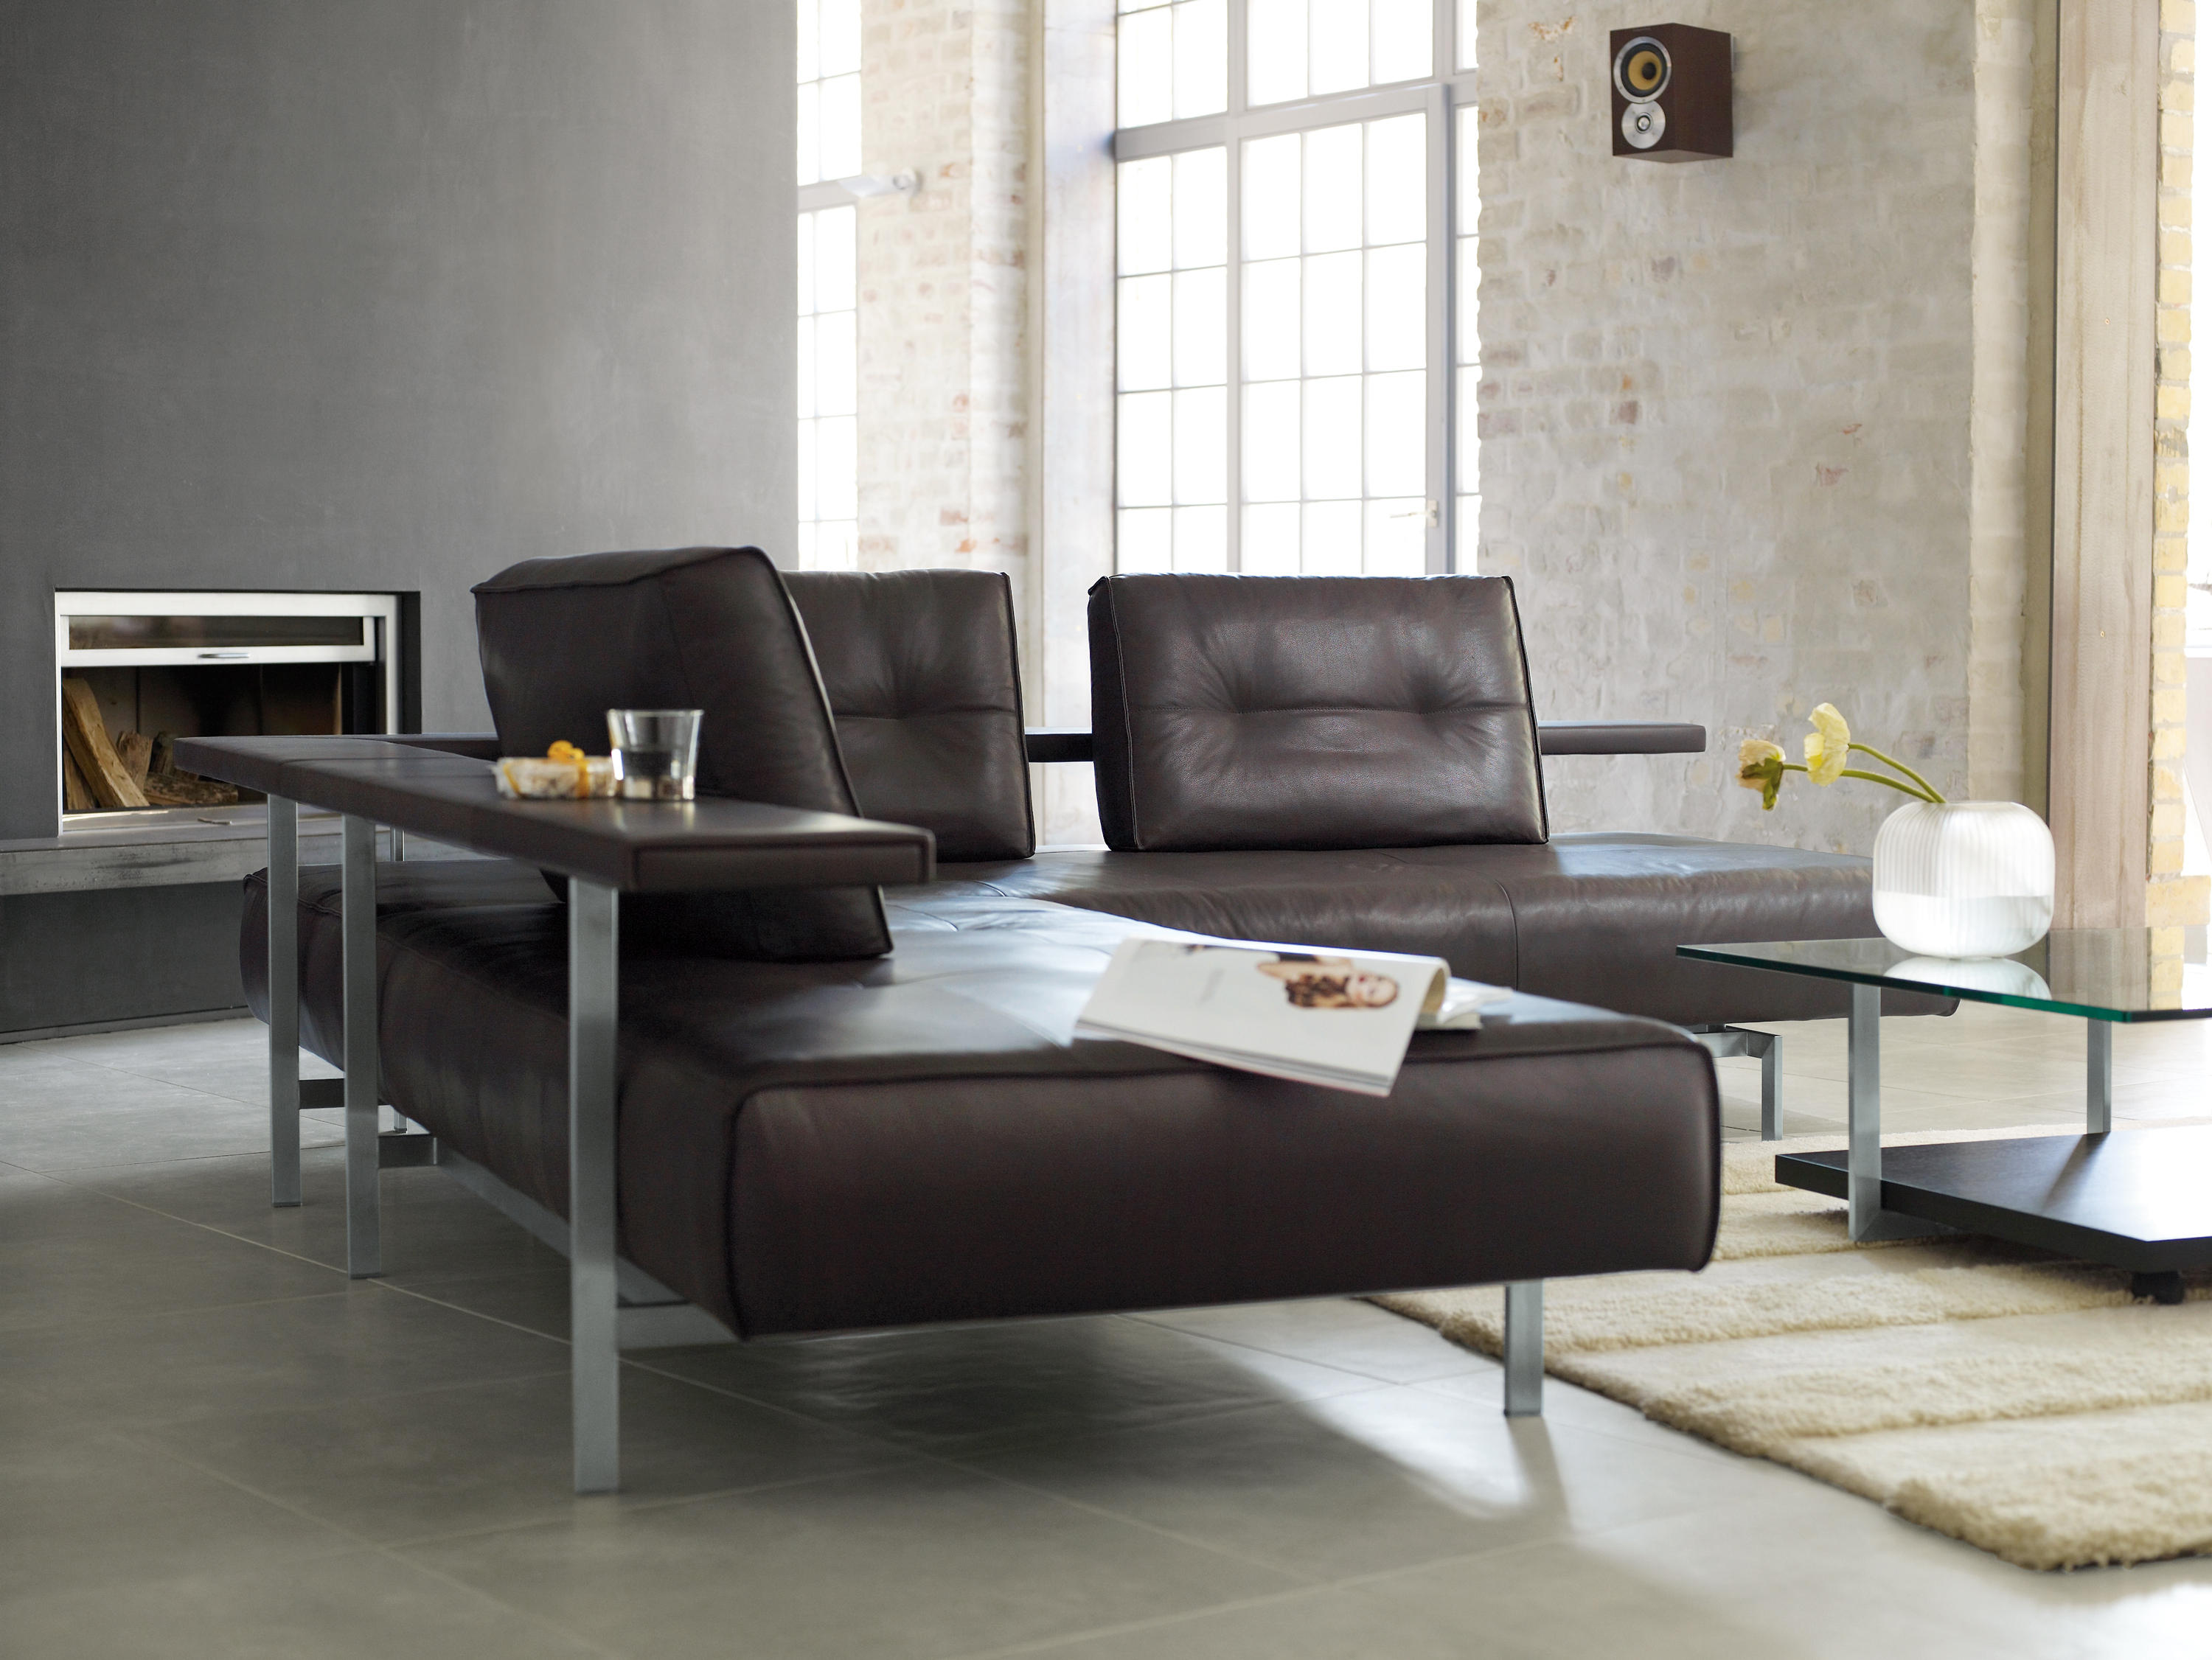 Rolf benz dono lounge sofas from rolf benz architonic for Rolf benz